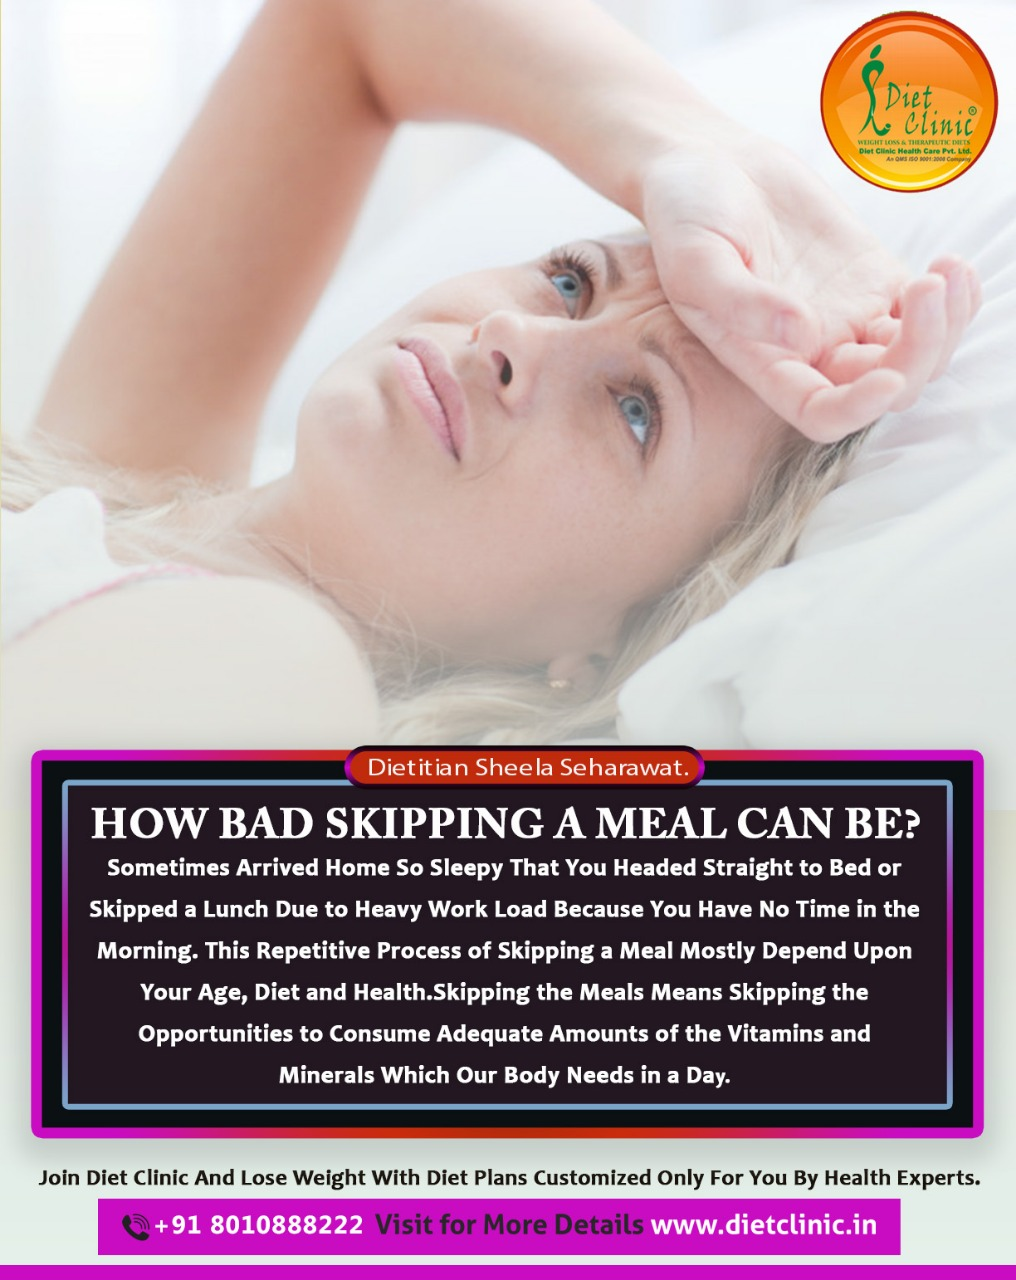 How bad skipping a meal can be